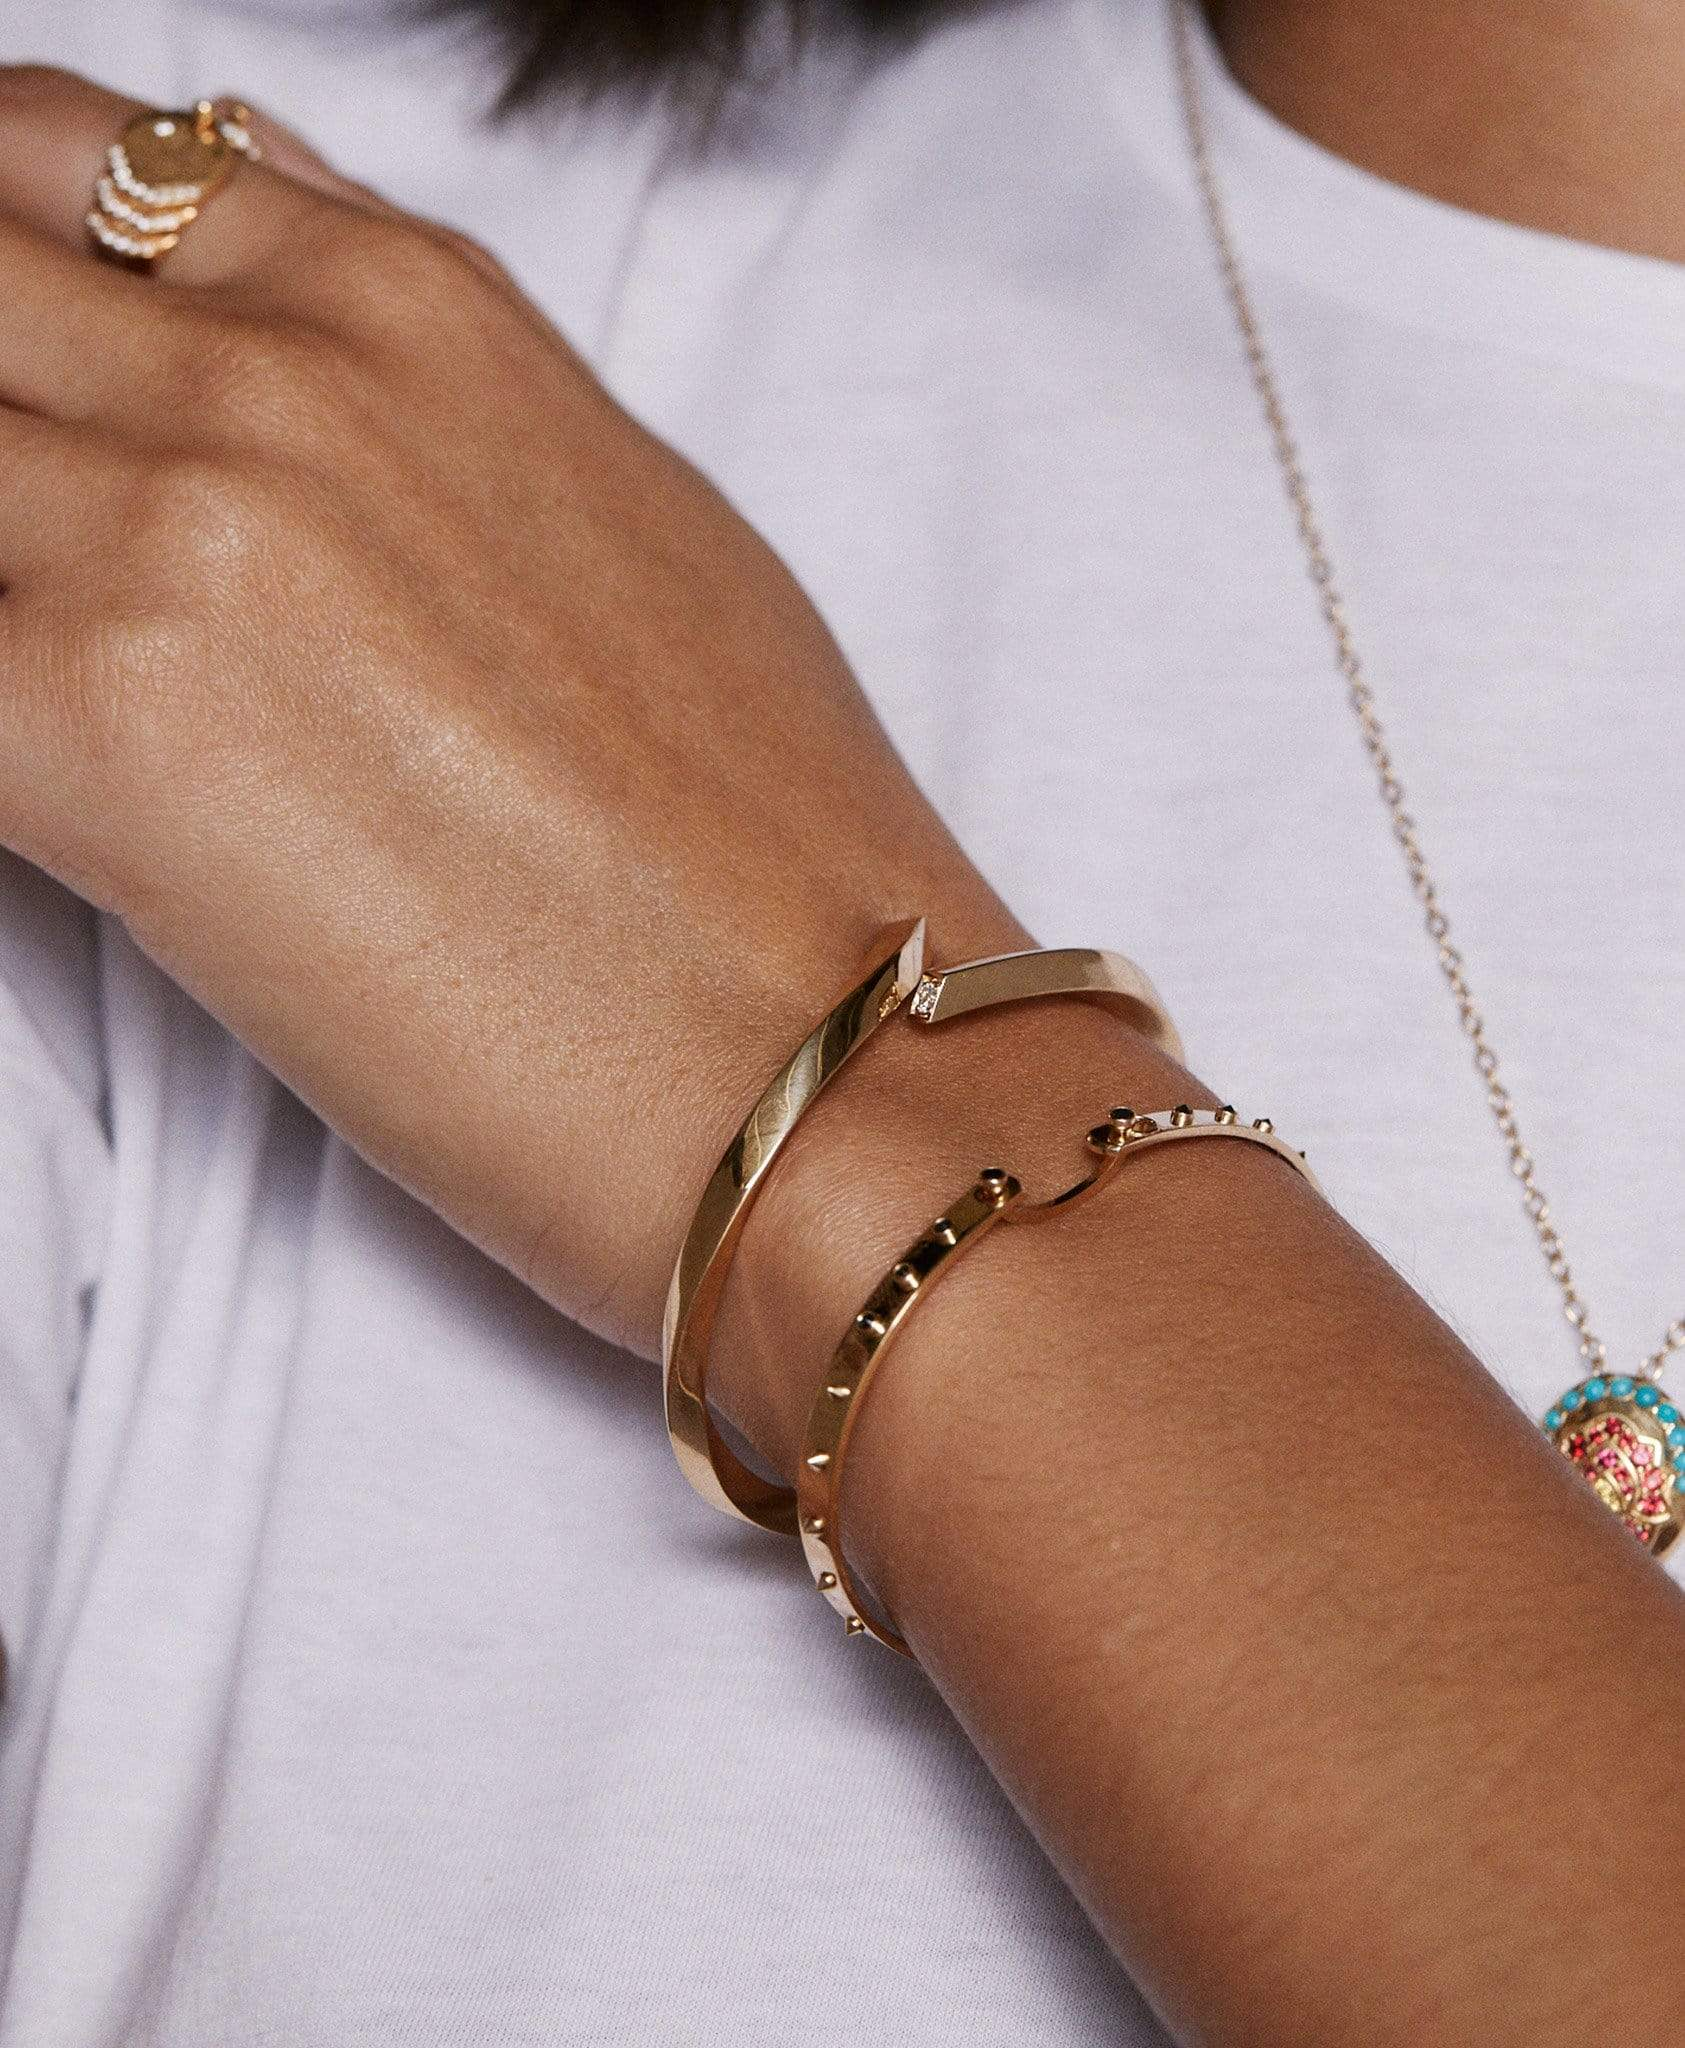 Brunch in LA Mood Bangle: Discover Luxury Fine Jewelry | Nouvel Heritage